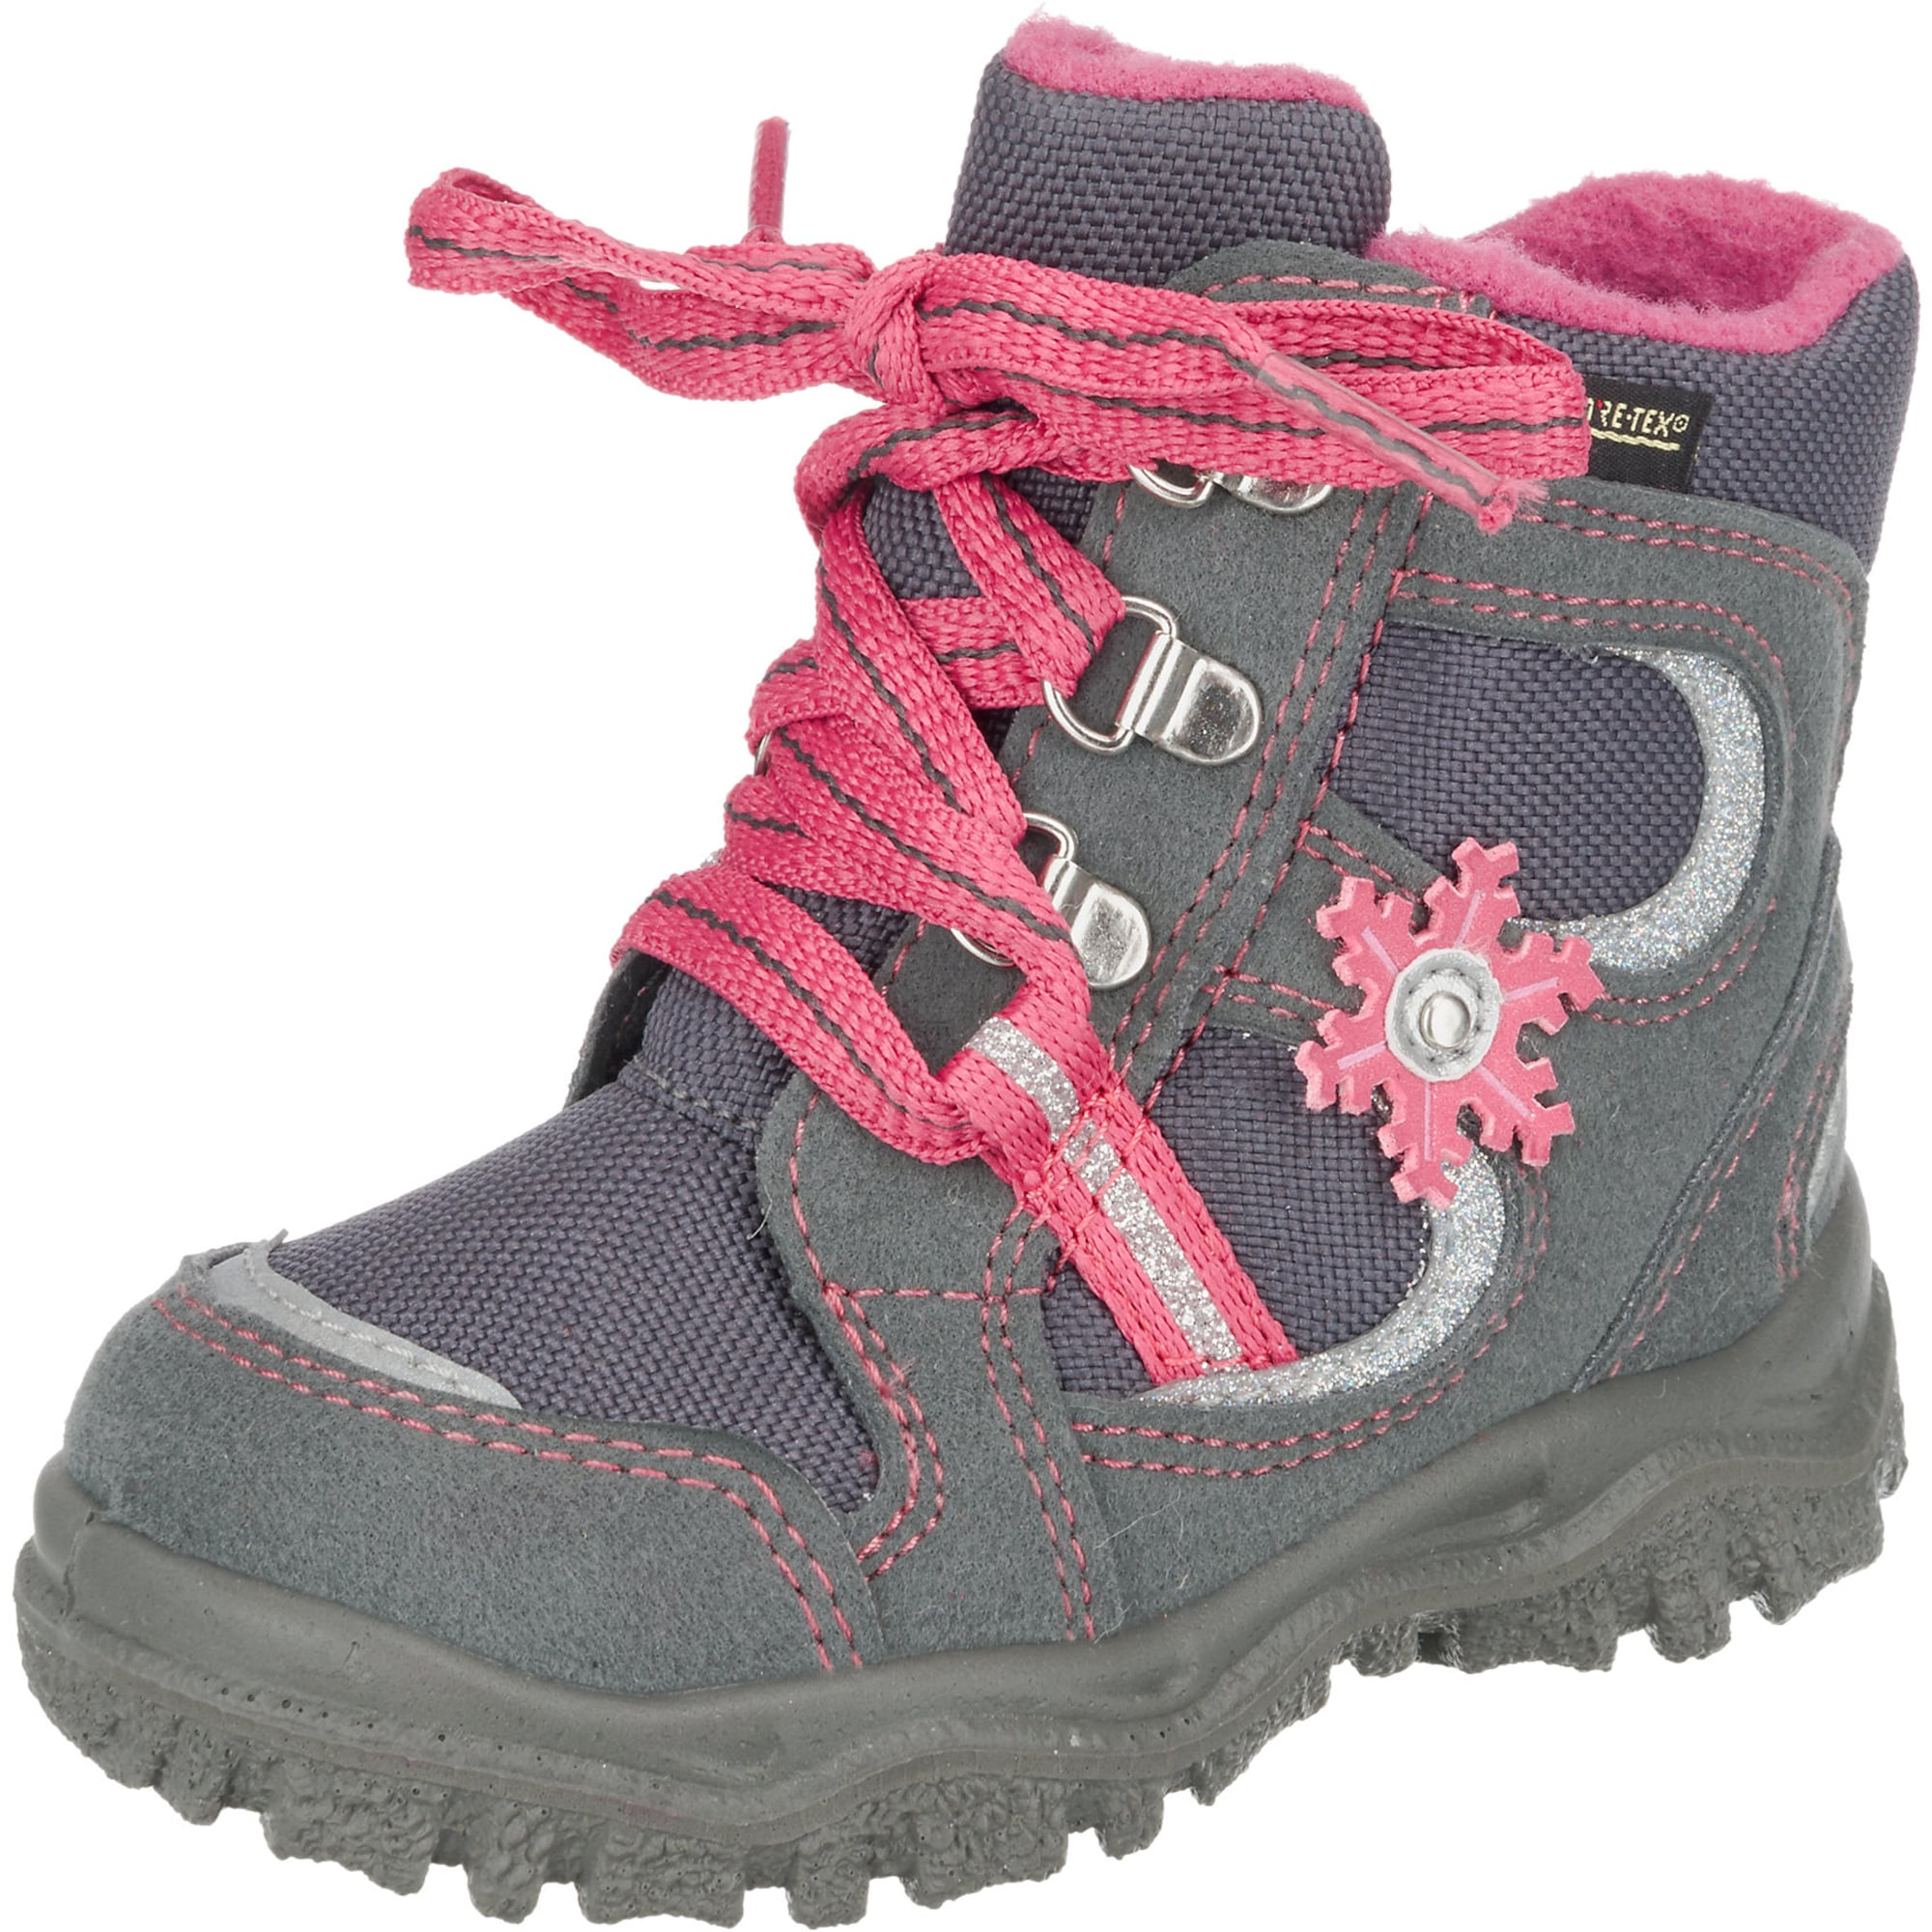 info for ff3e5 eceb3 AboutYou | Kinder SUPERFIT Winterstiefel 'Husky' grau, pink ...